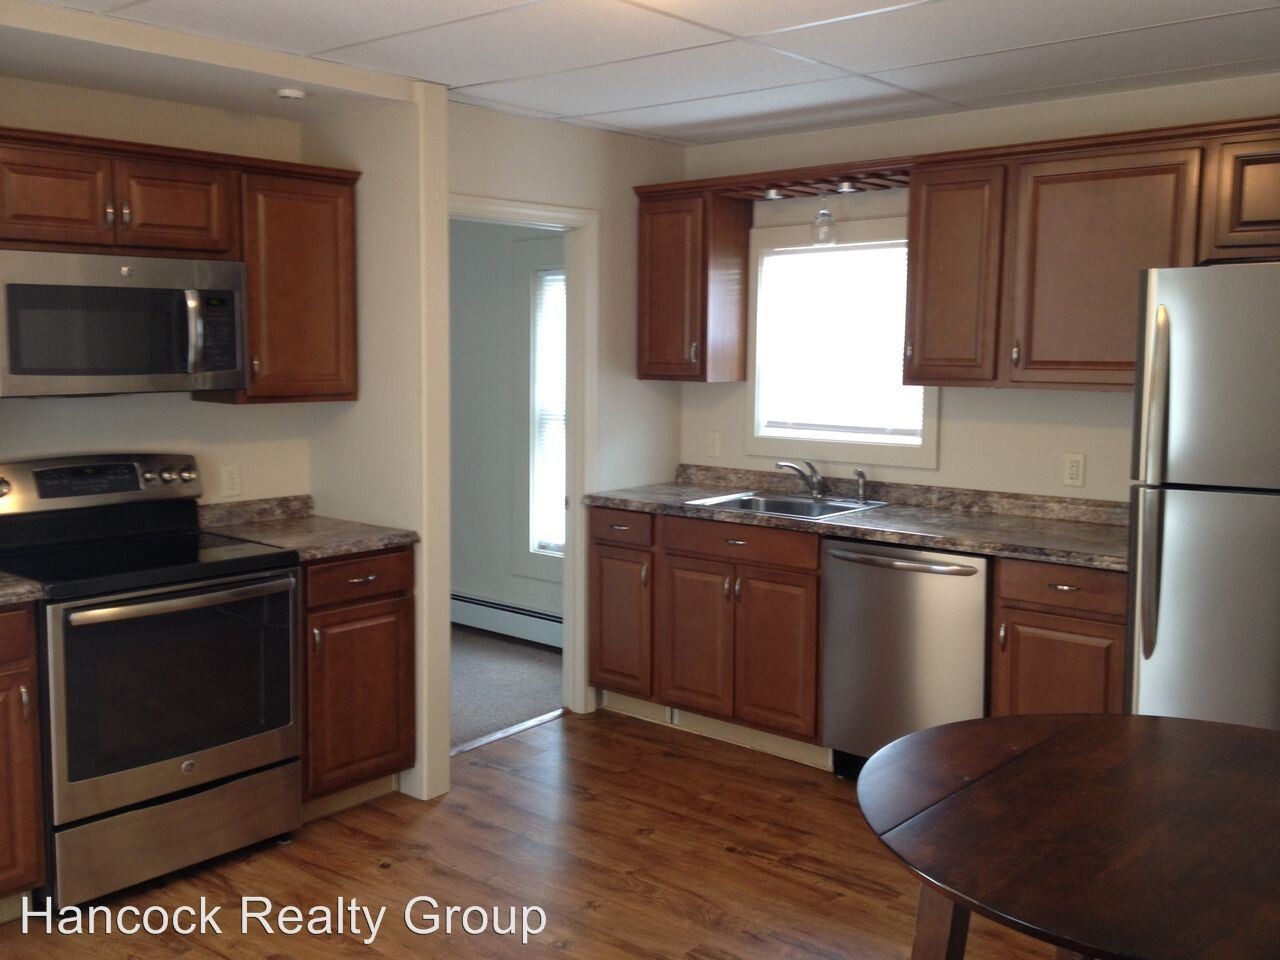 111 Ingell St Taunton Ma 02780 1 Bedroom Apartment For Rent